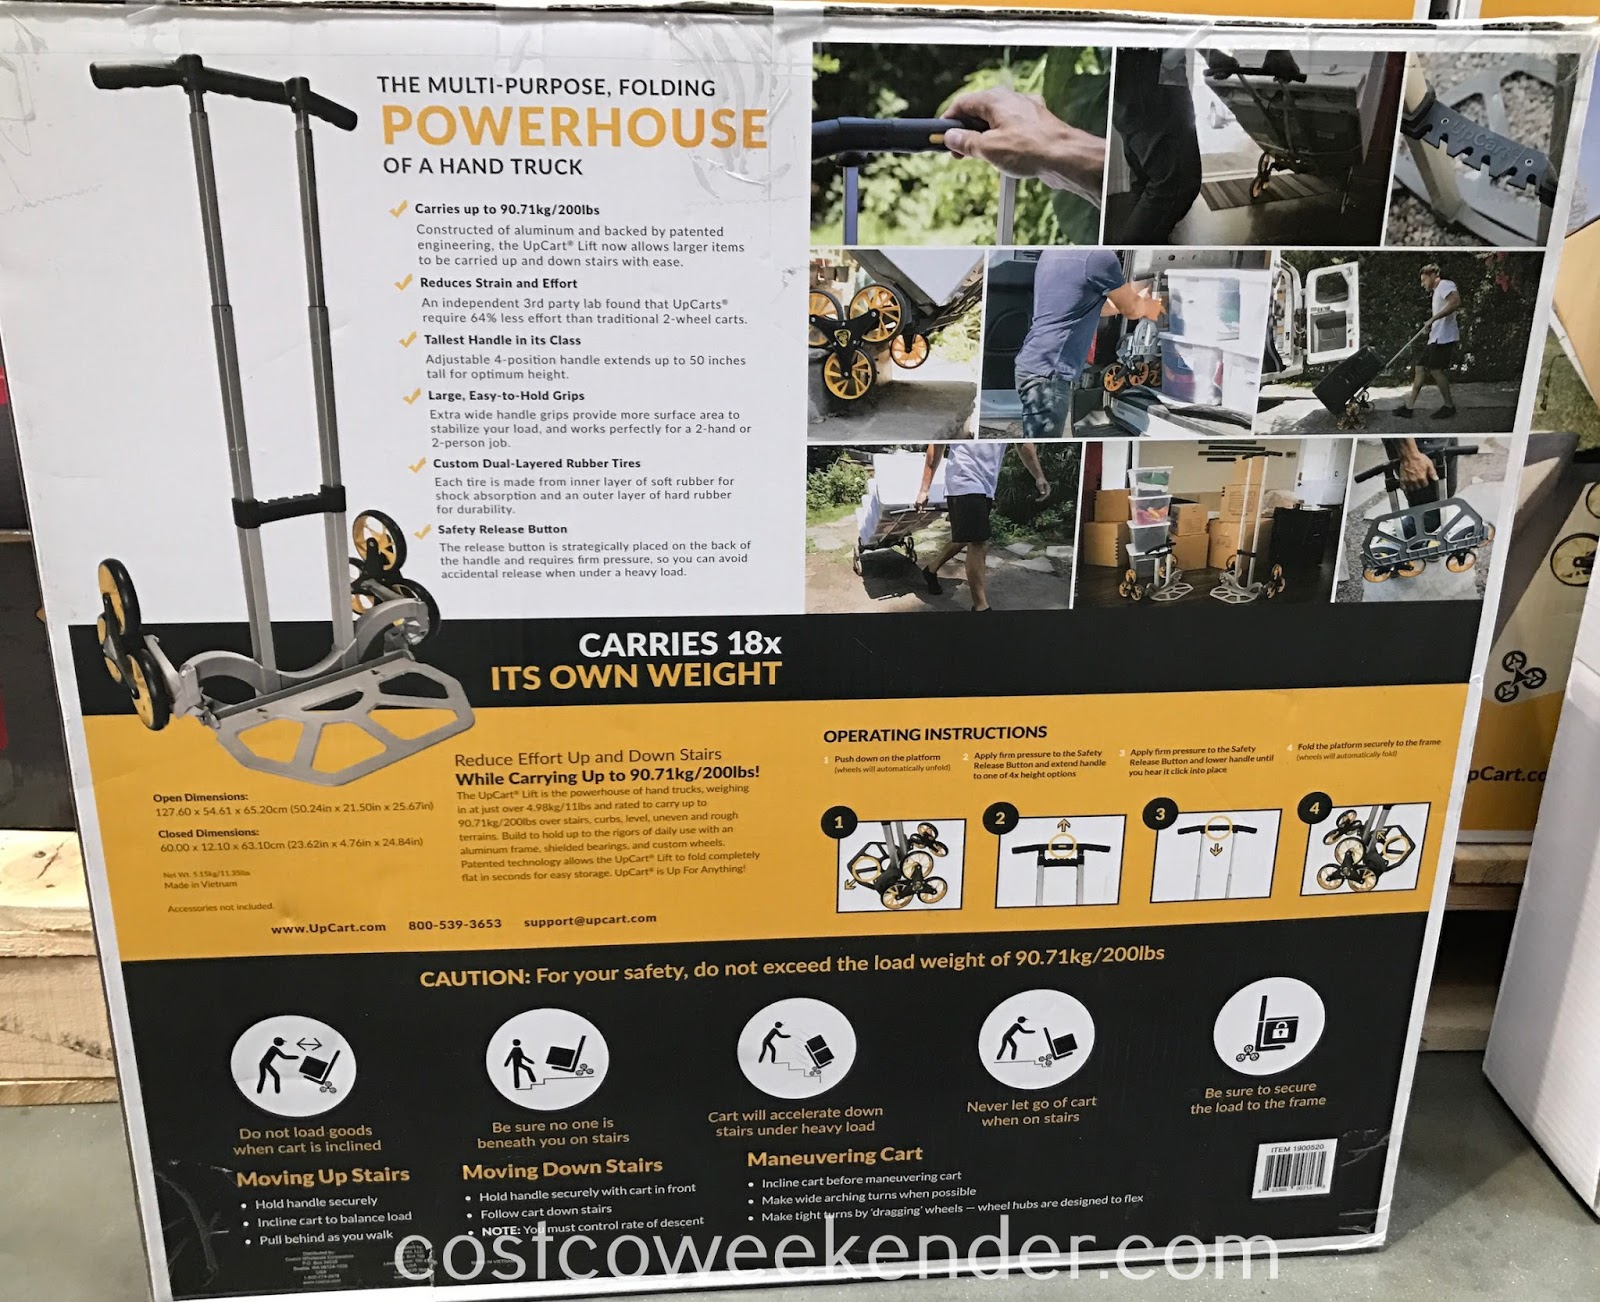 Costco 1900520 - The UpCart Lift Stair-Climbing Hand Truck allows you to take the stairs even when moving